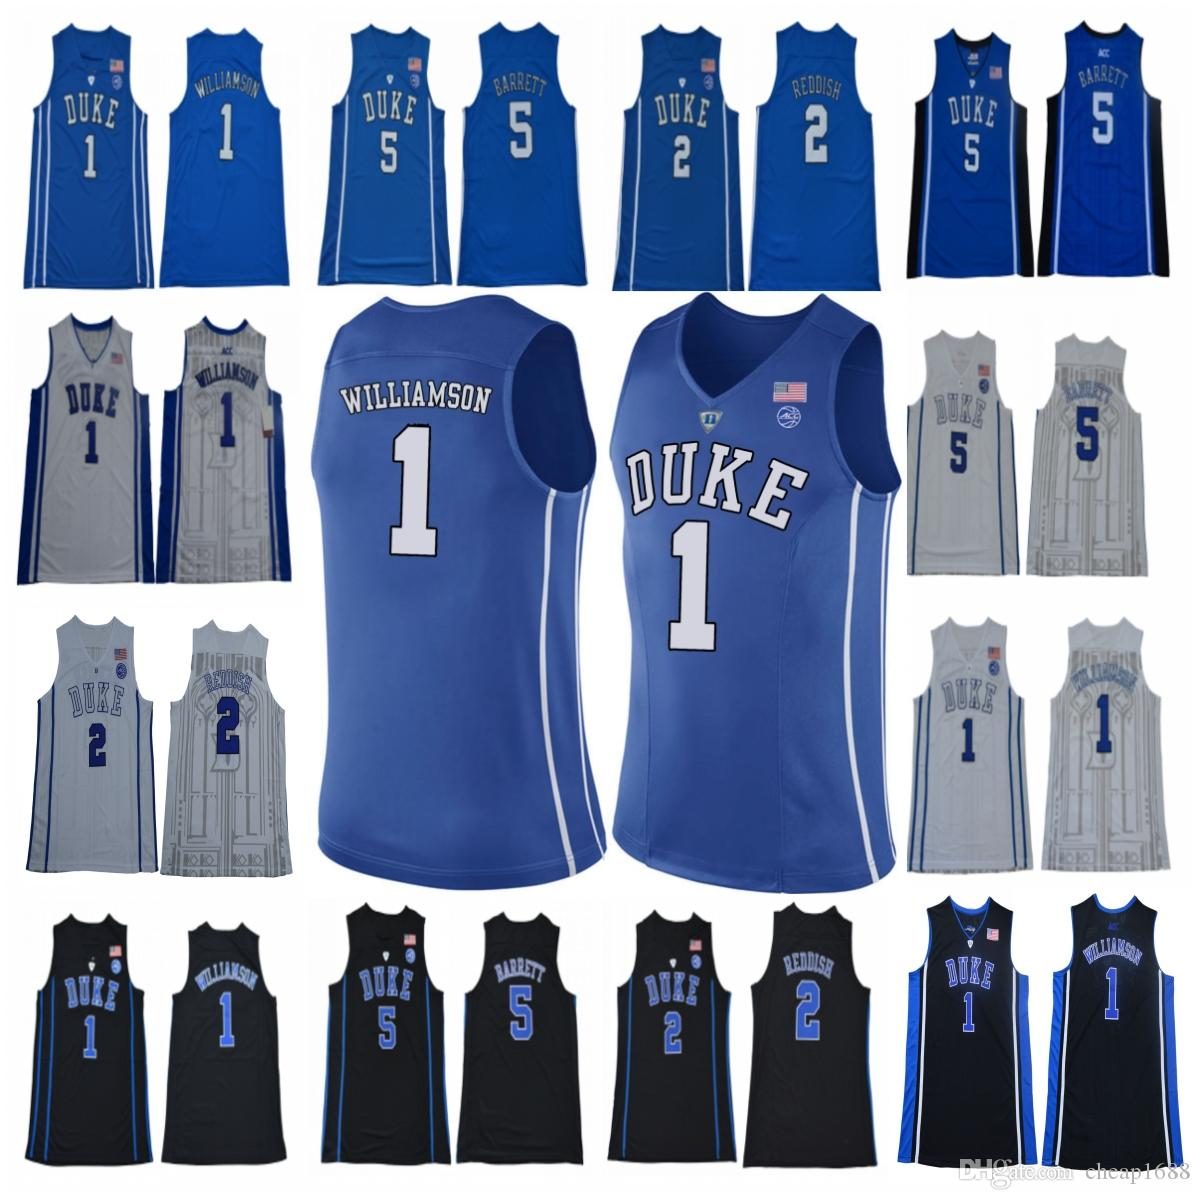 2019 NCAA Duke Blue Devils 1 Zion Williamson 5 RJ Barrett 2 Cam Reddish  White Blue Black Men Youth College Basketball Jerseys From Cheap1688 d8261c740